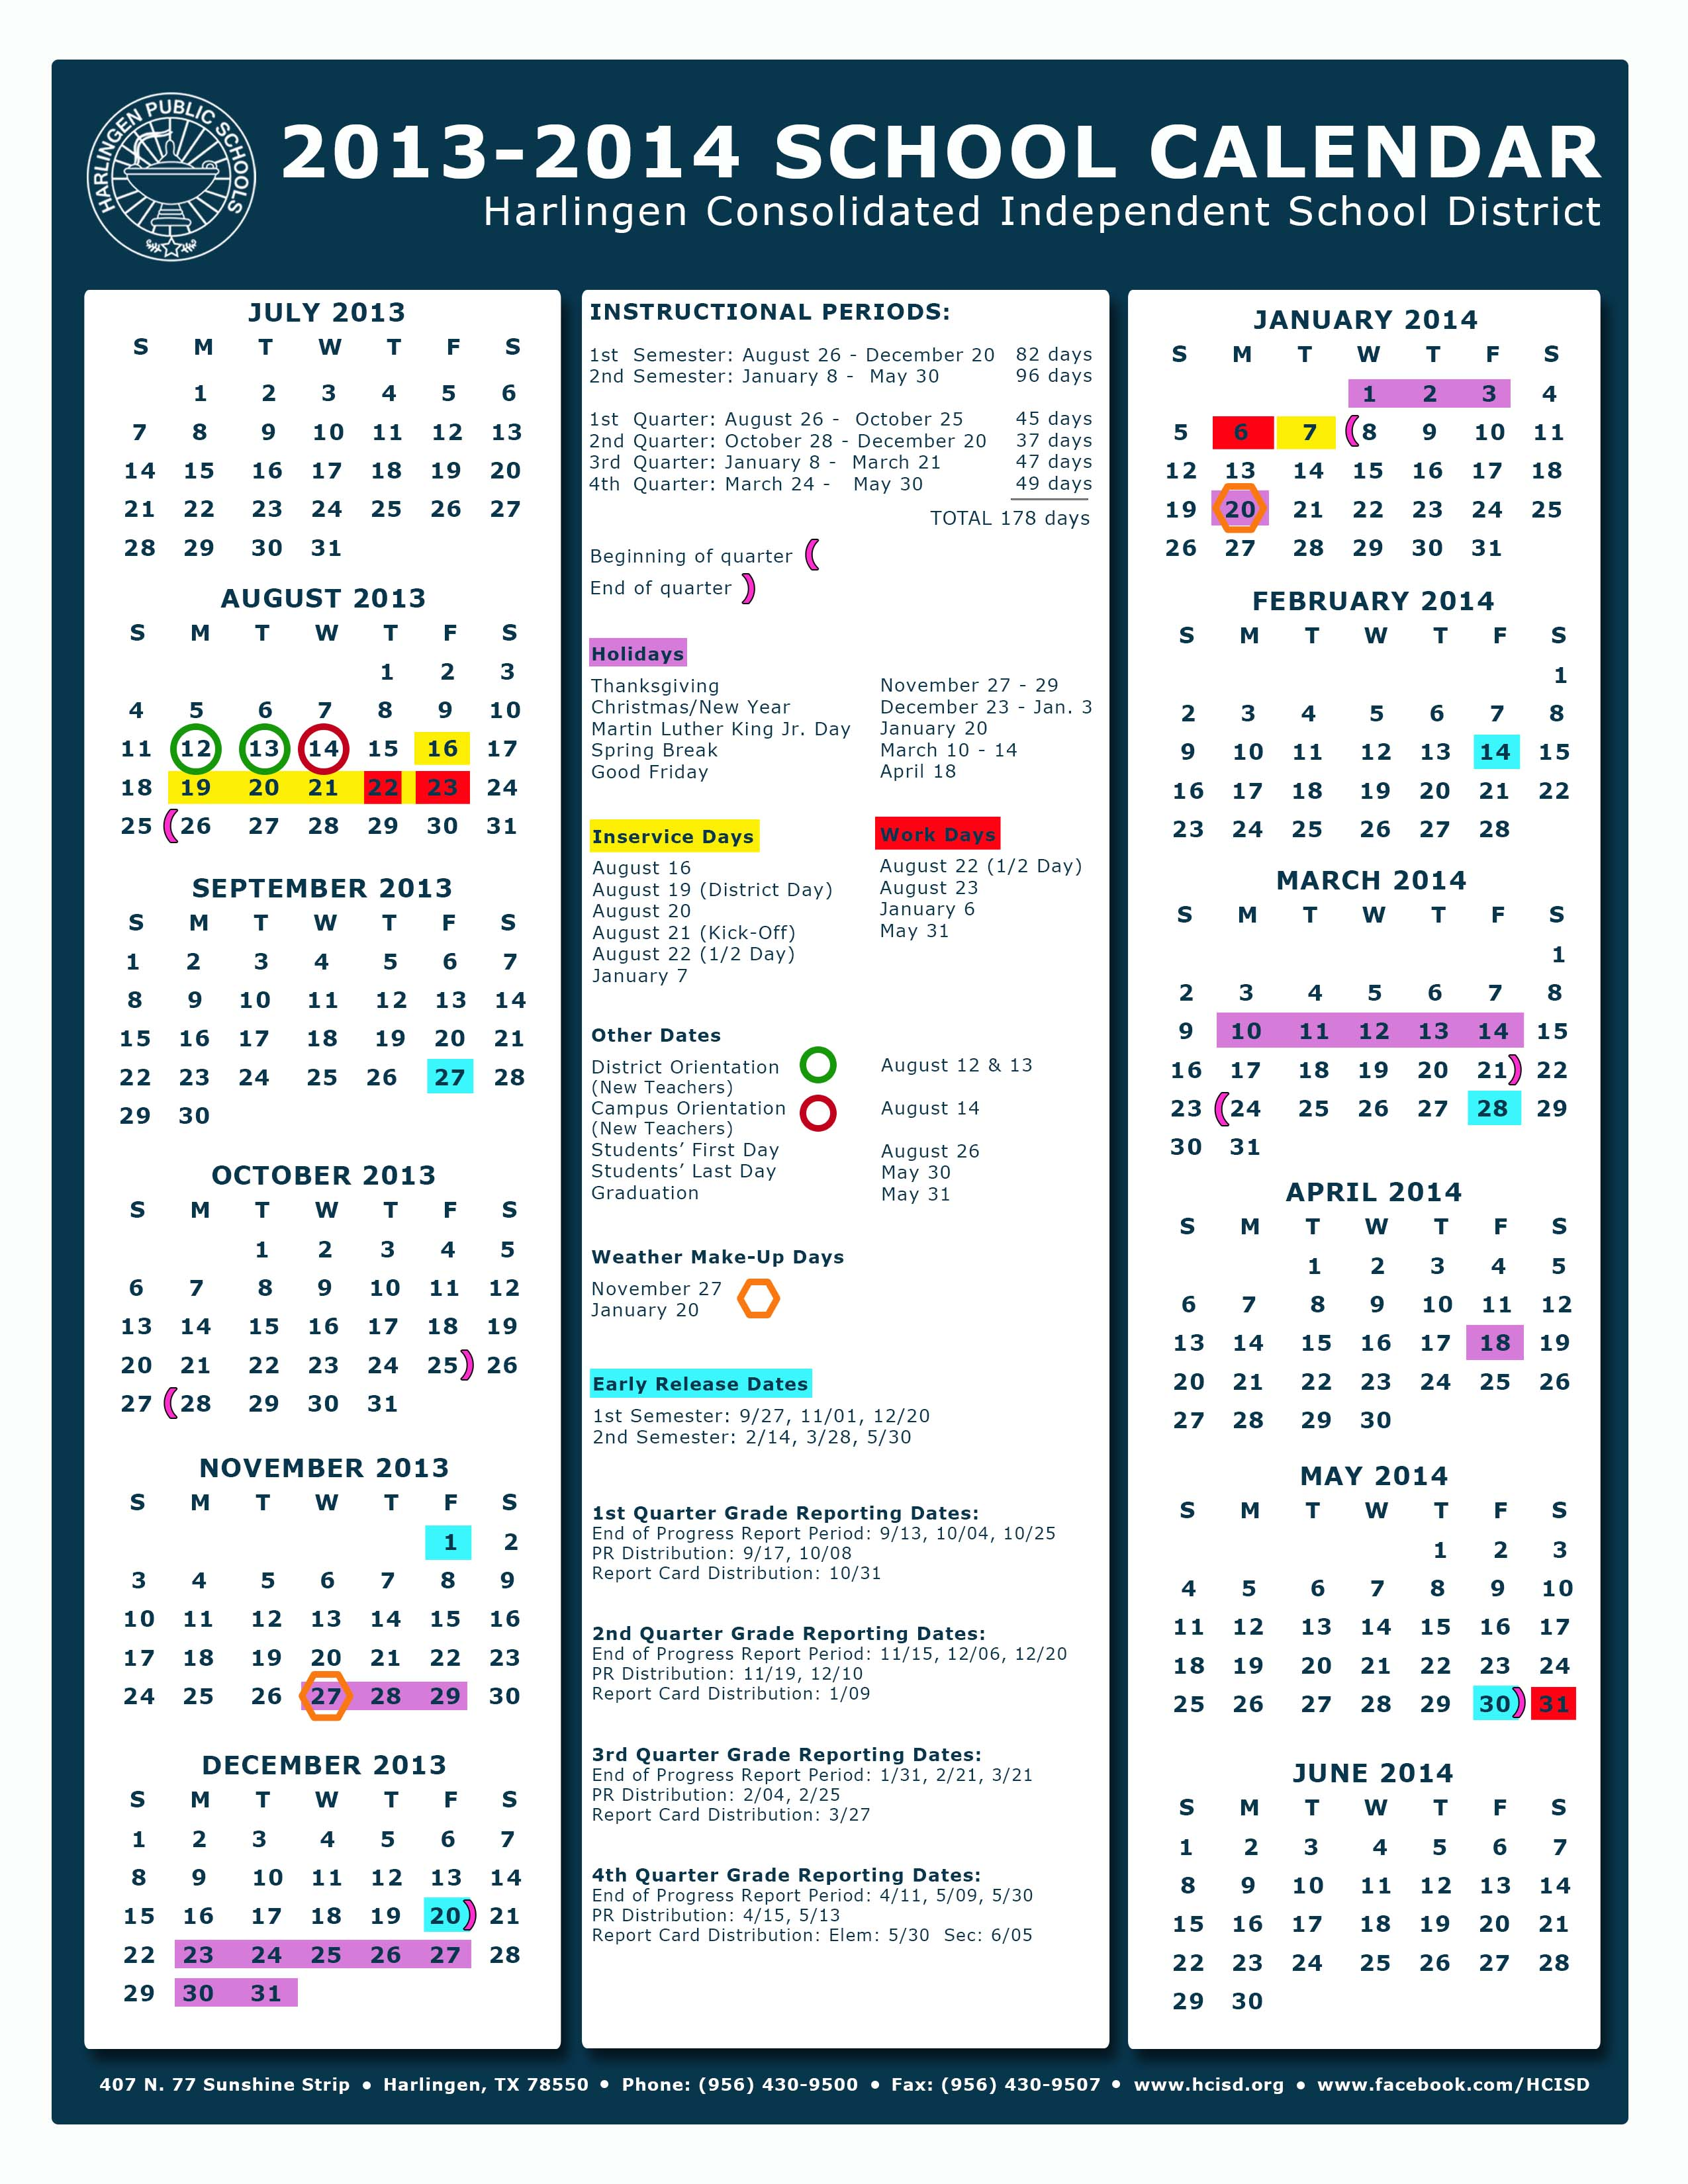 shifting of school calendar 5 3 3rd shift staff eligible for shift premium on mandatory workdays only if training is 5 5 provided that day the following dates are eligible for shift premium.